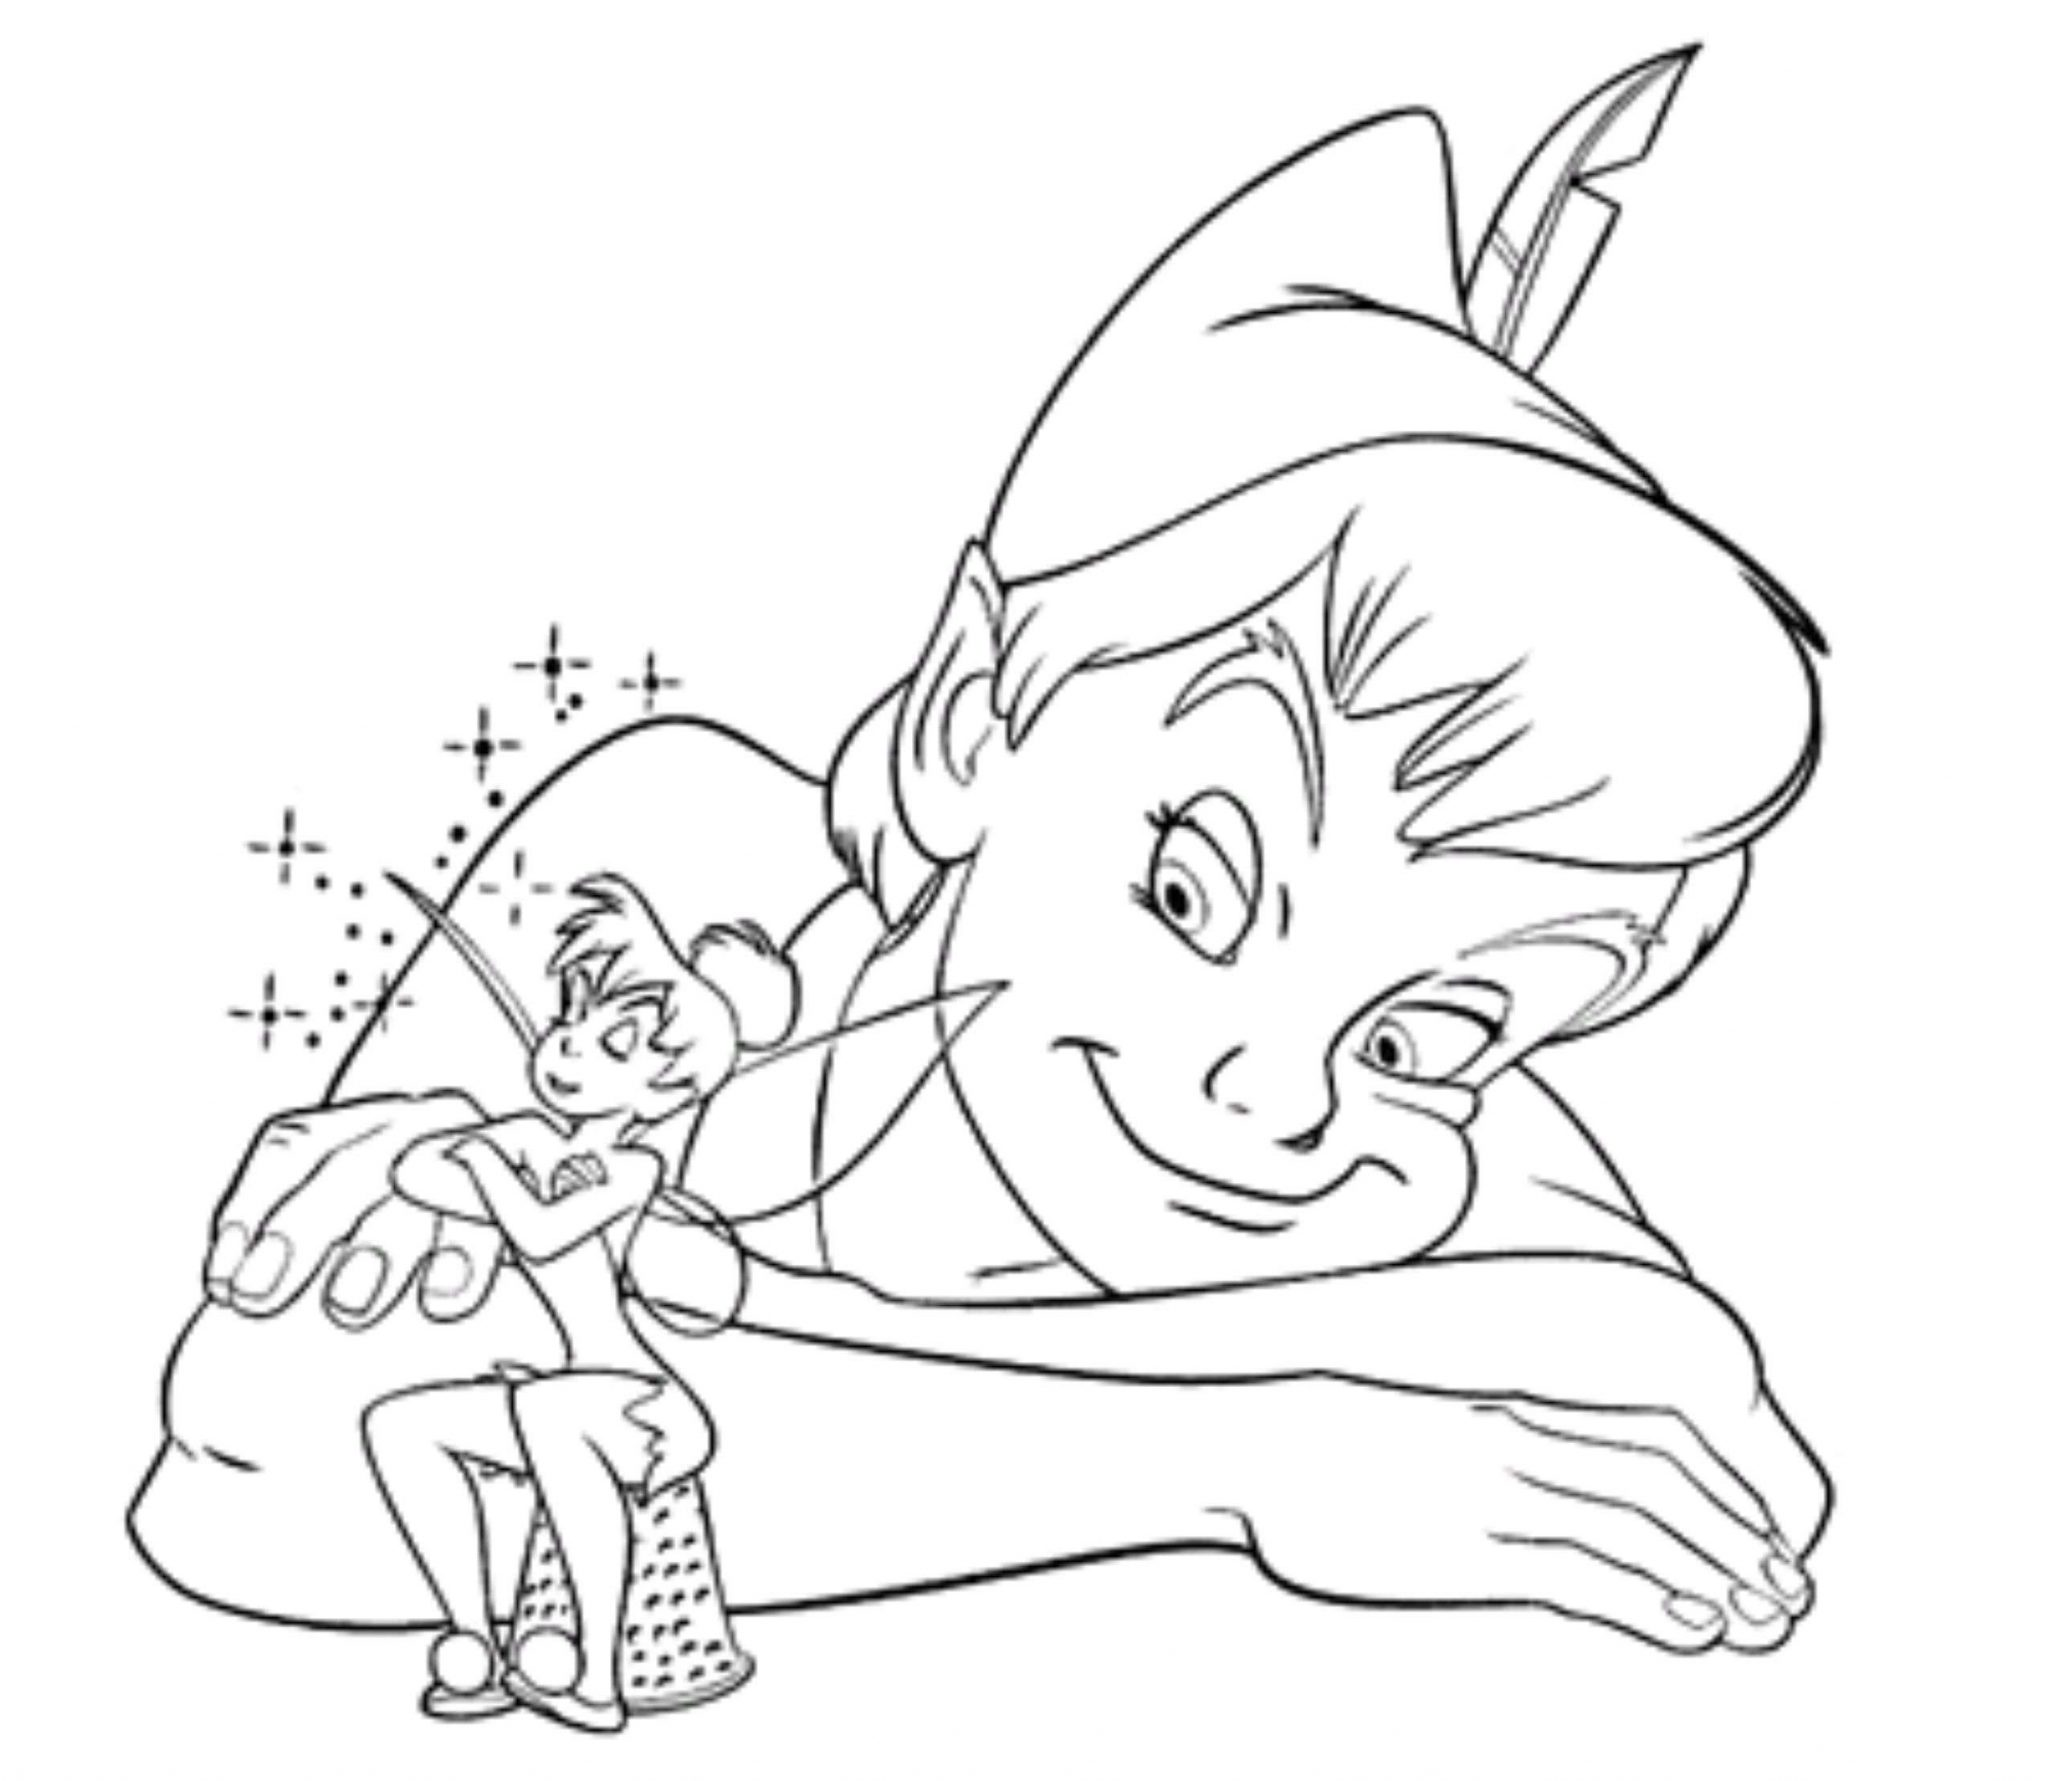 Peter Pan Tinkerbell Coloring Pages